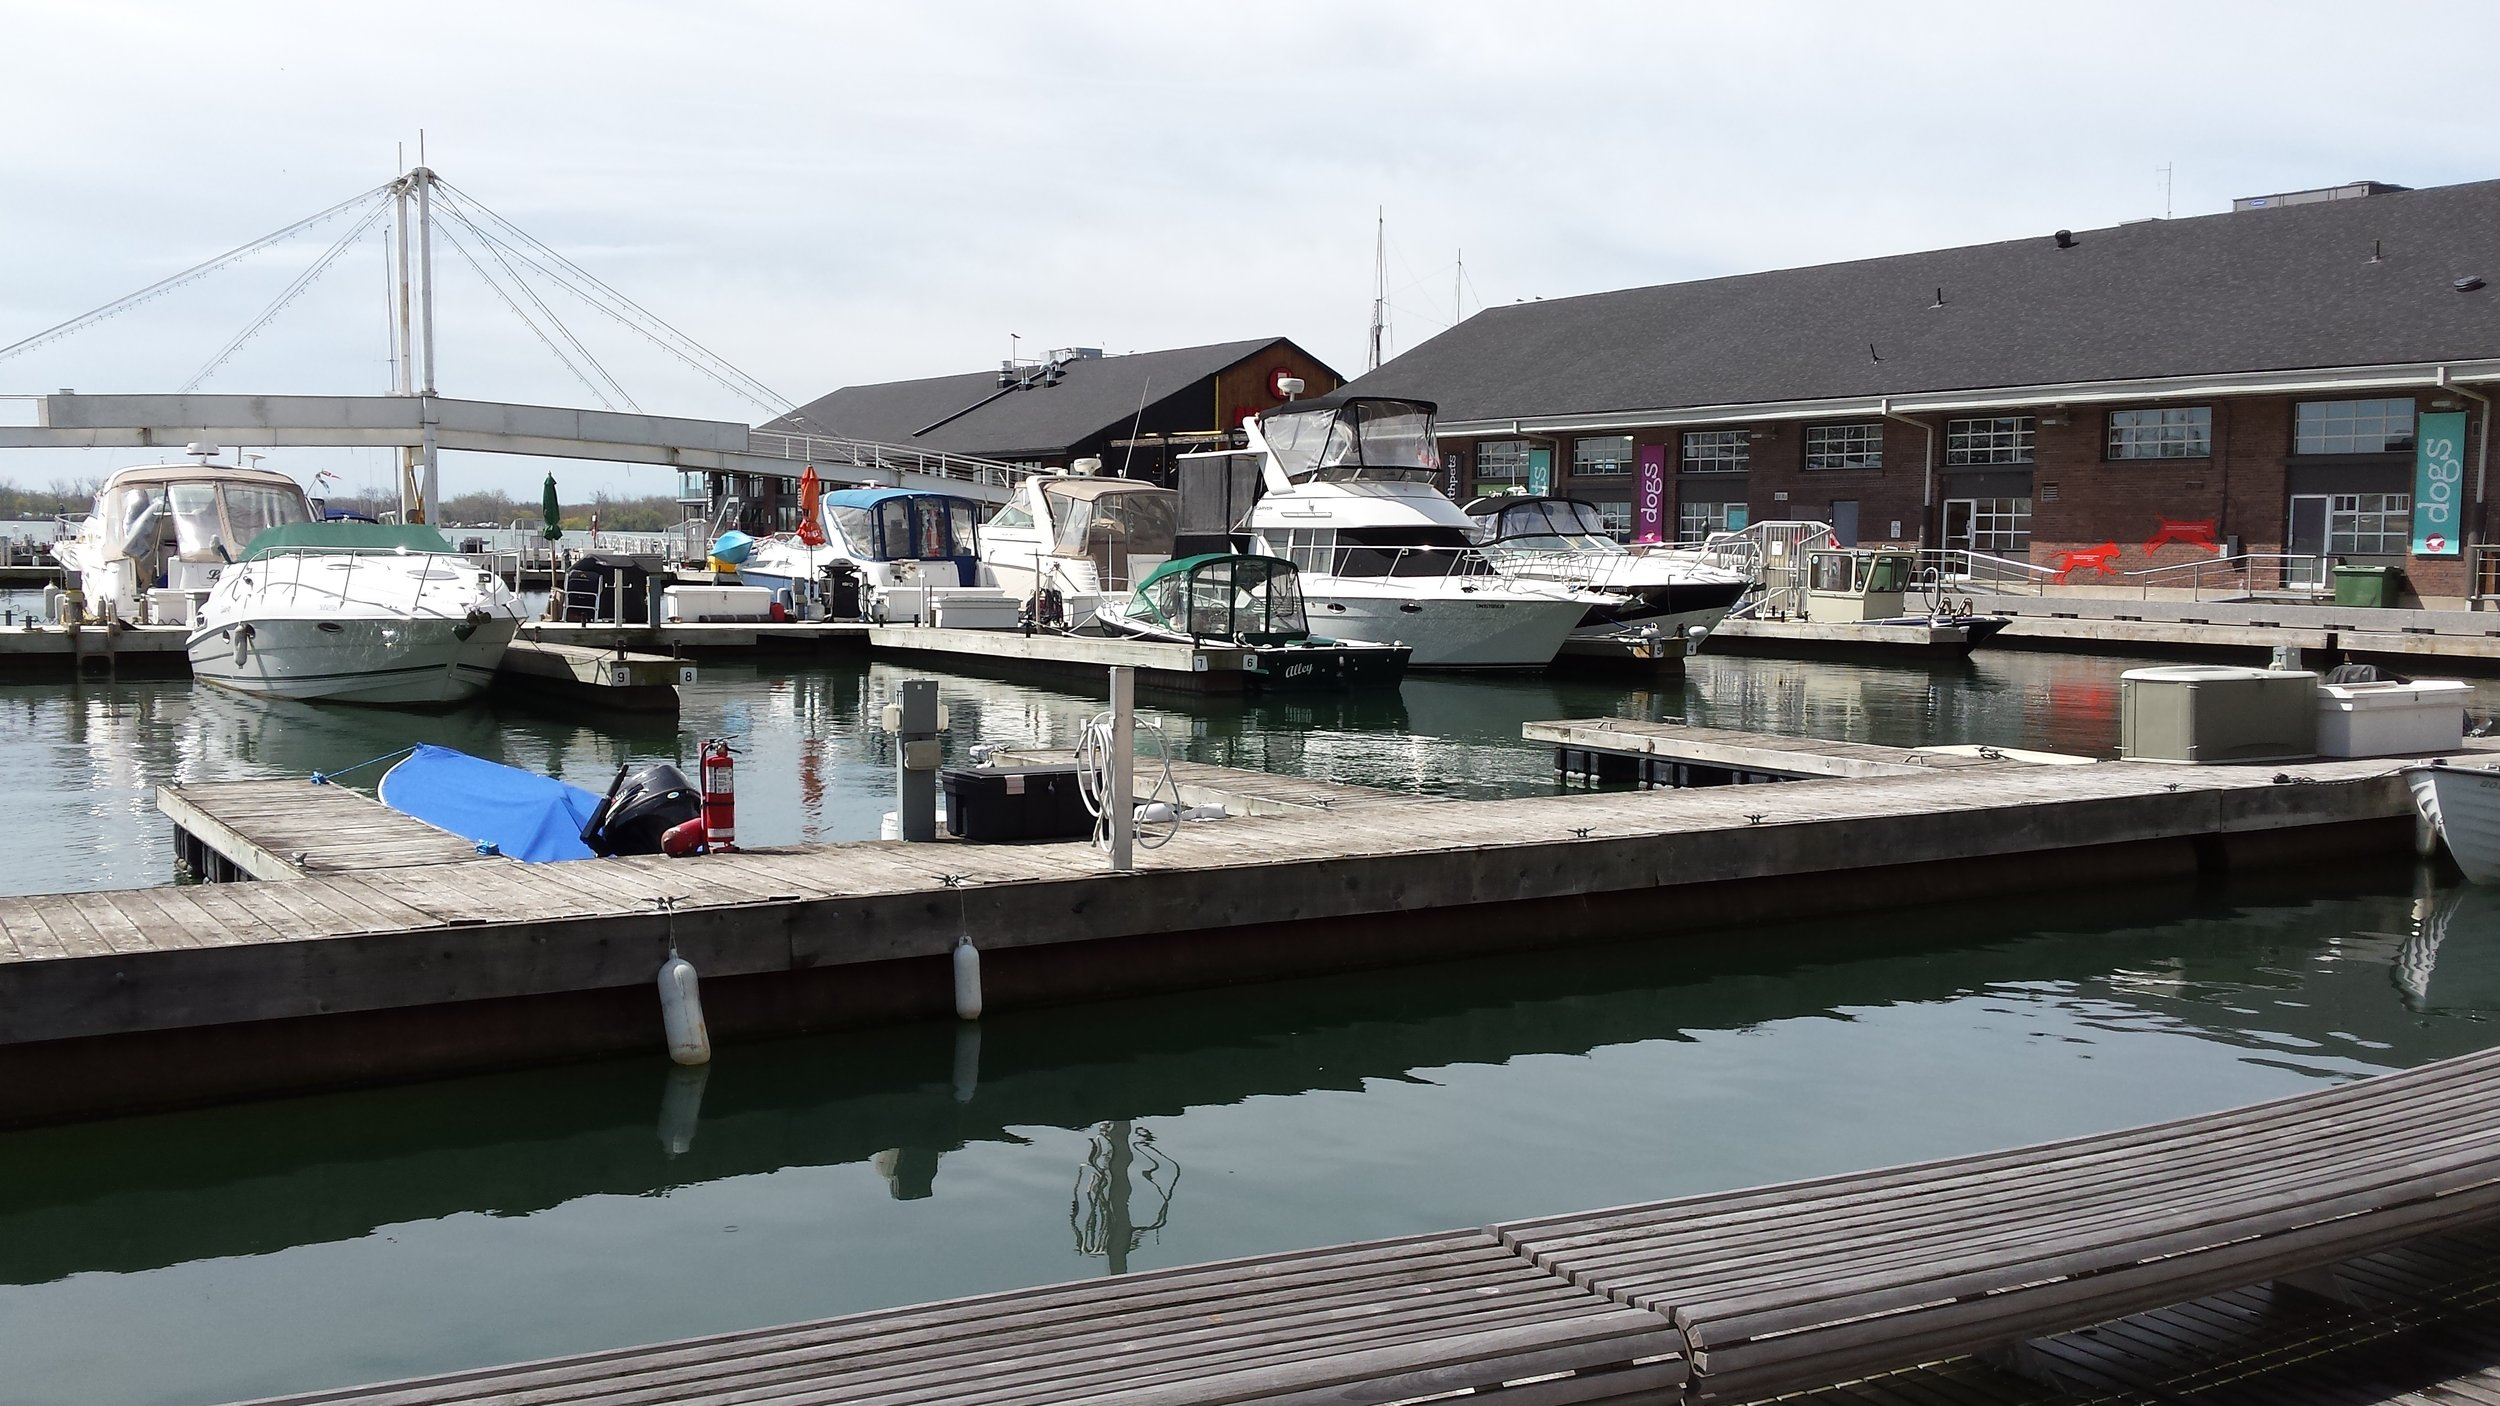 Pier 4 Marina. The green water is a welcome sight. Photo by Lake Ontario Waterkeeper.